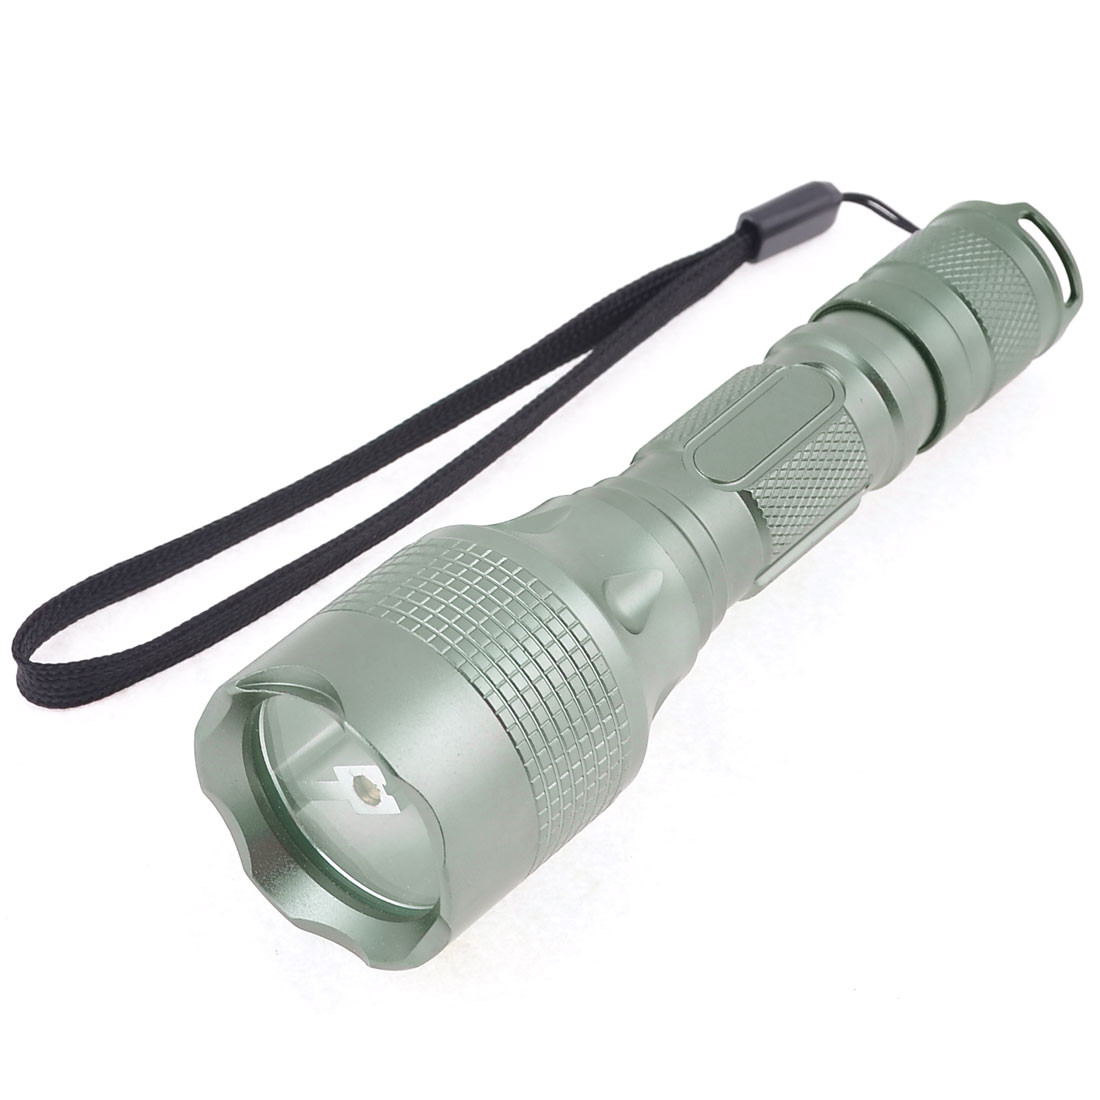 "Nonslip Handle 250LM LED White Light Camping Flashlight Gray 5.5"" Long"